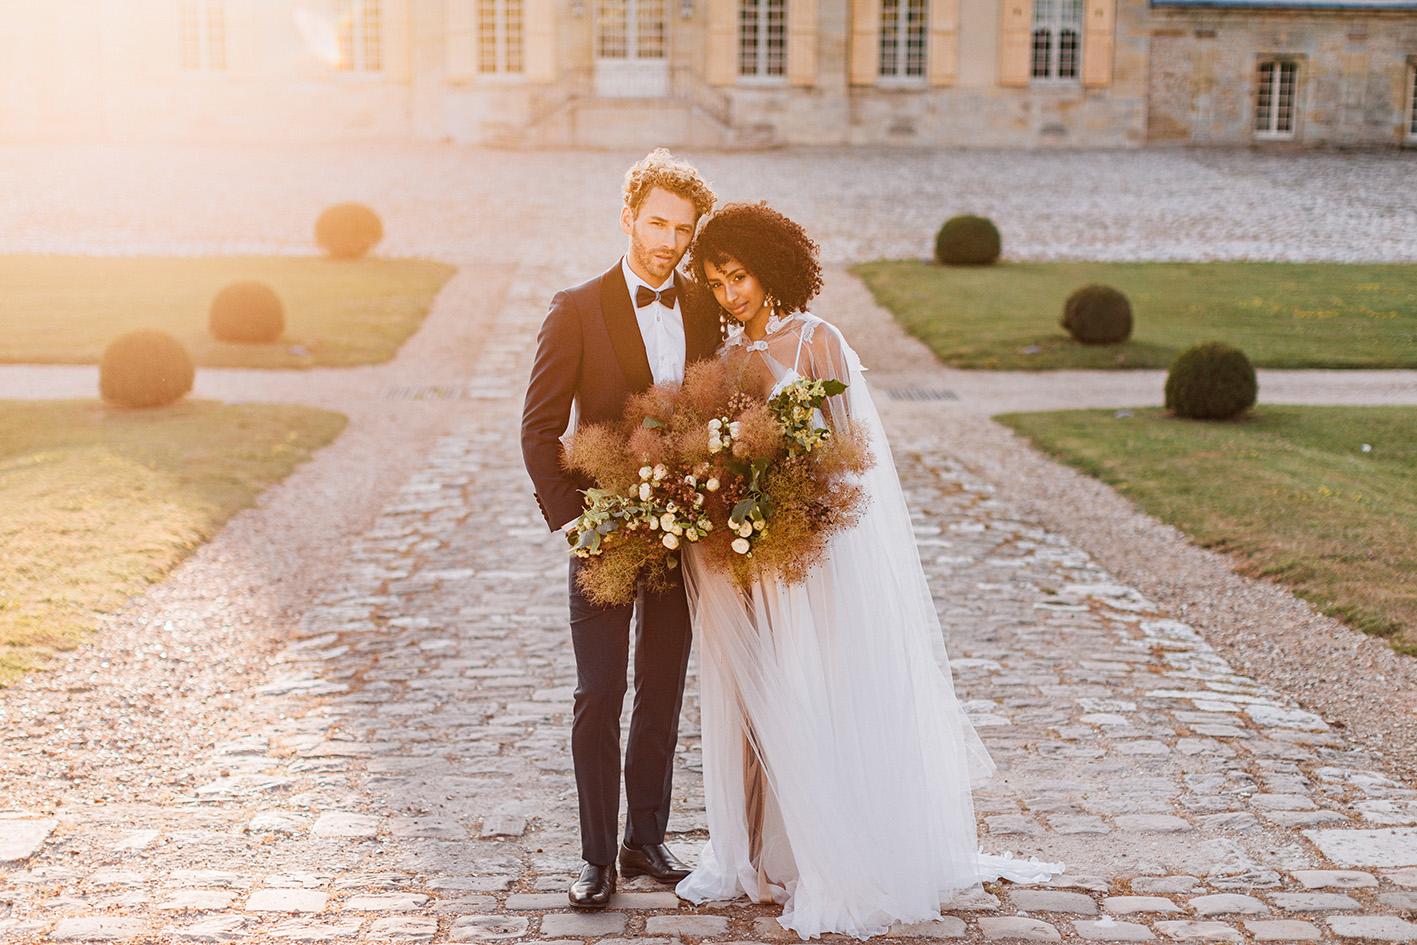 le chateau de Villette Condécourt wedding